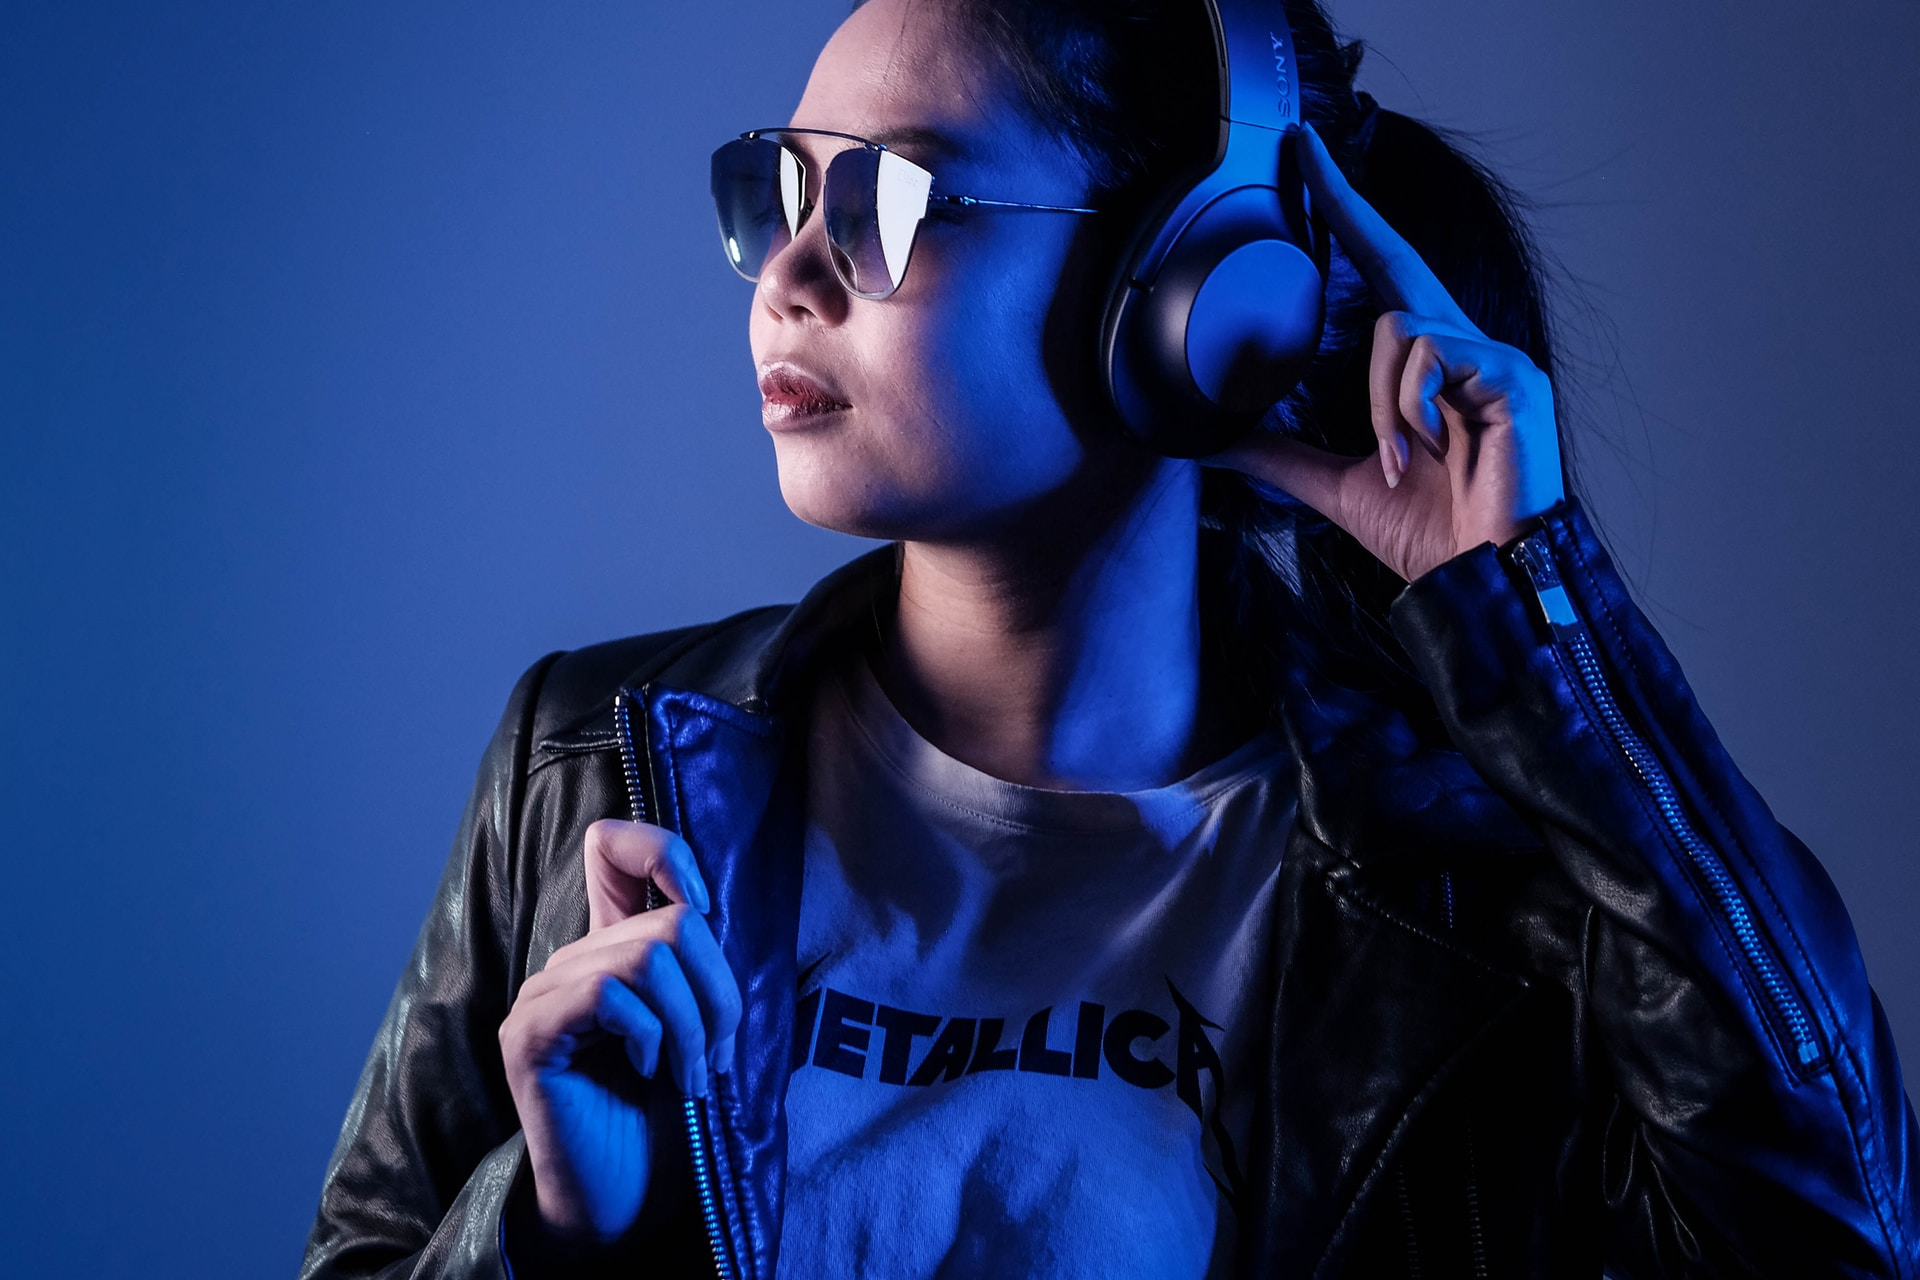 woman in black leather jacket wearing blue sunglasses